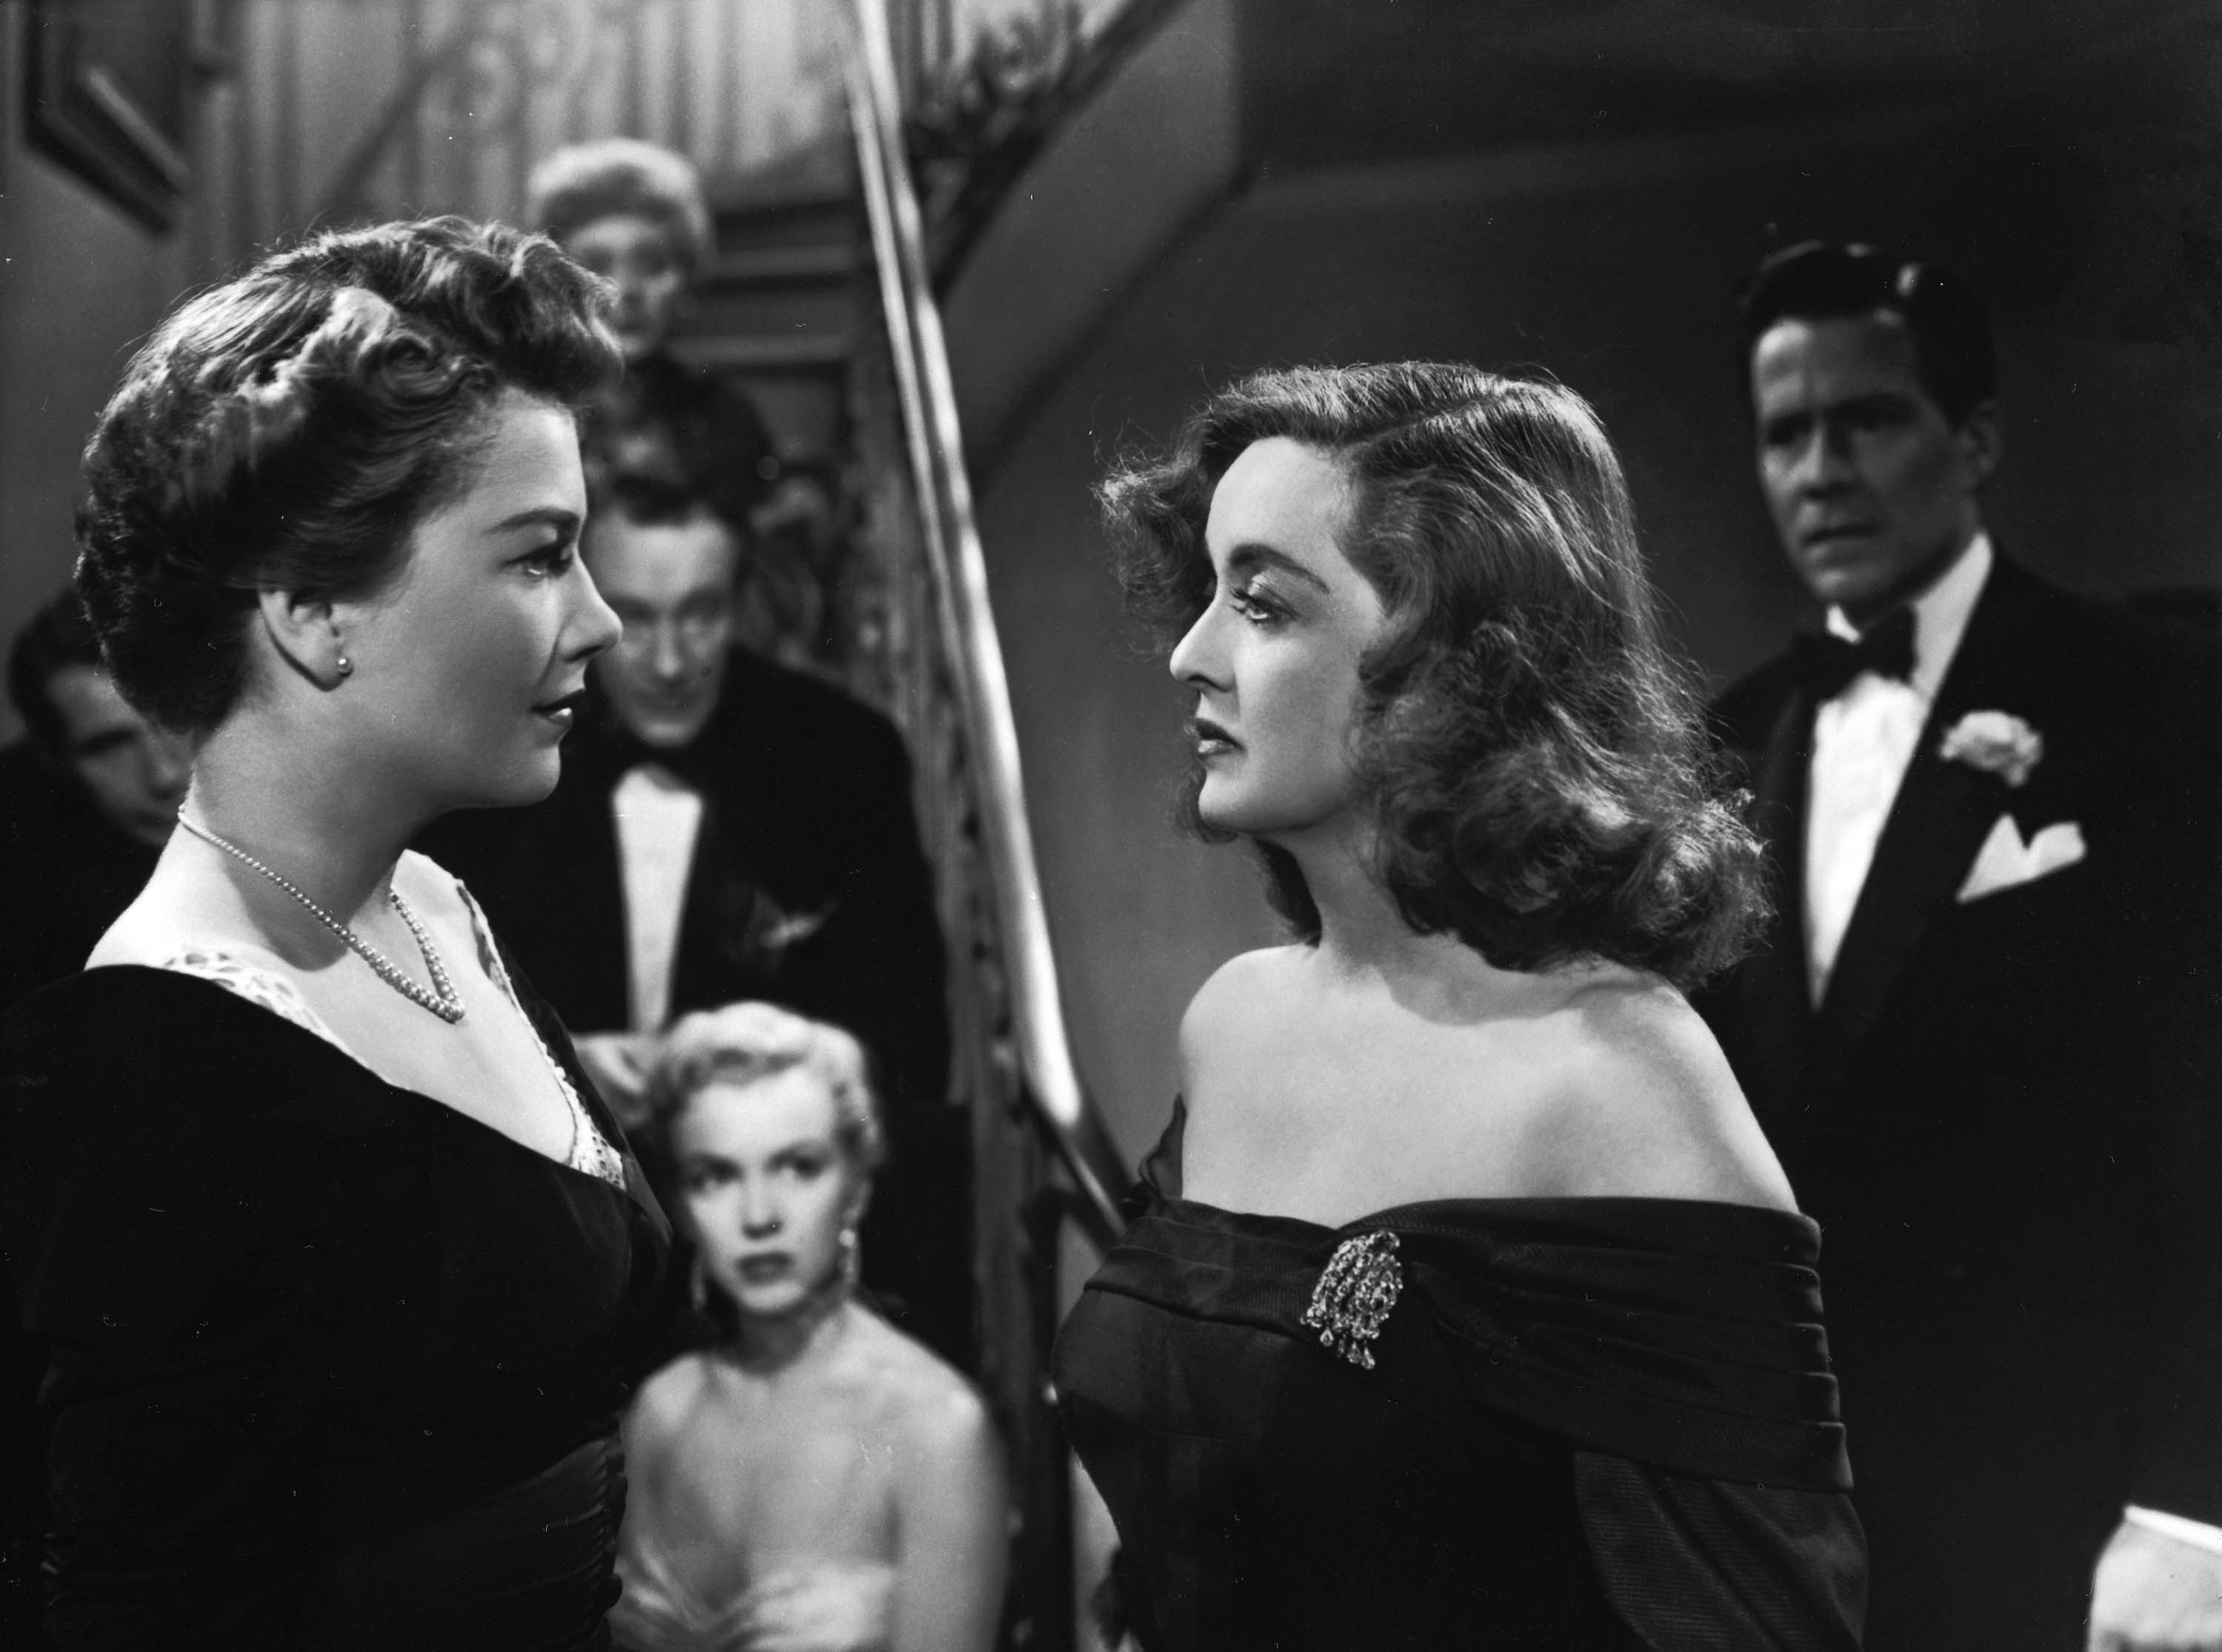 All About Eve ©2016 Twentieth Century Fox Film Corporation. All Rights Reserved.